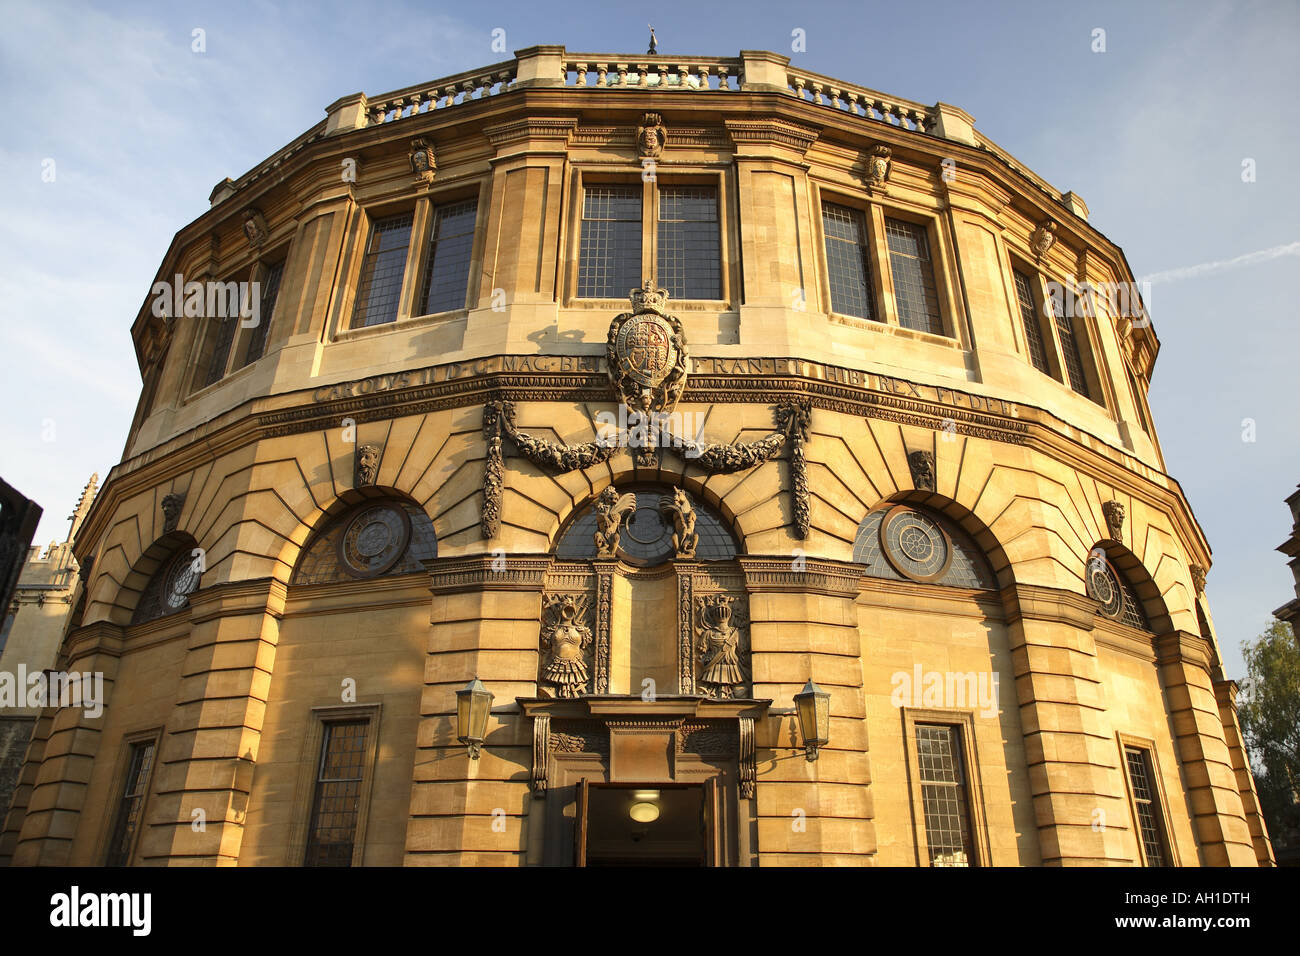 The Sheldonian Theatre, Oxford University, England, UK Stock Photo